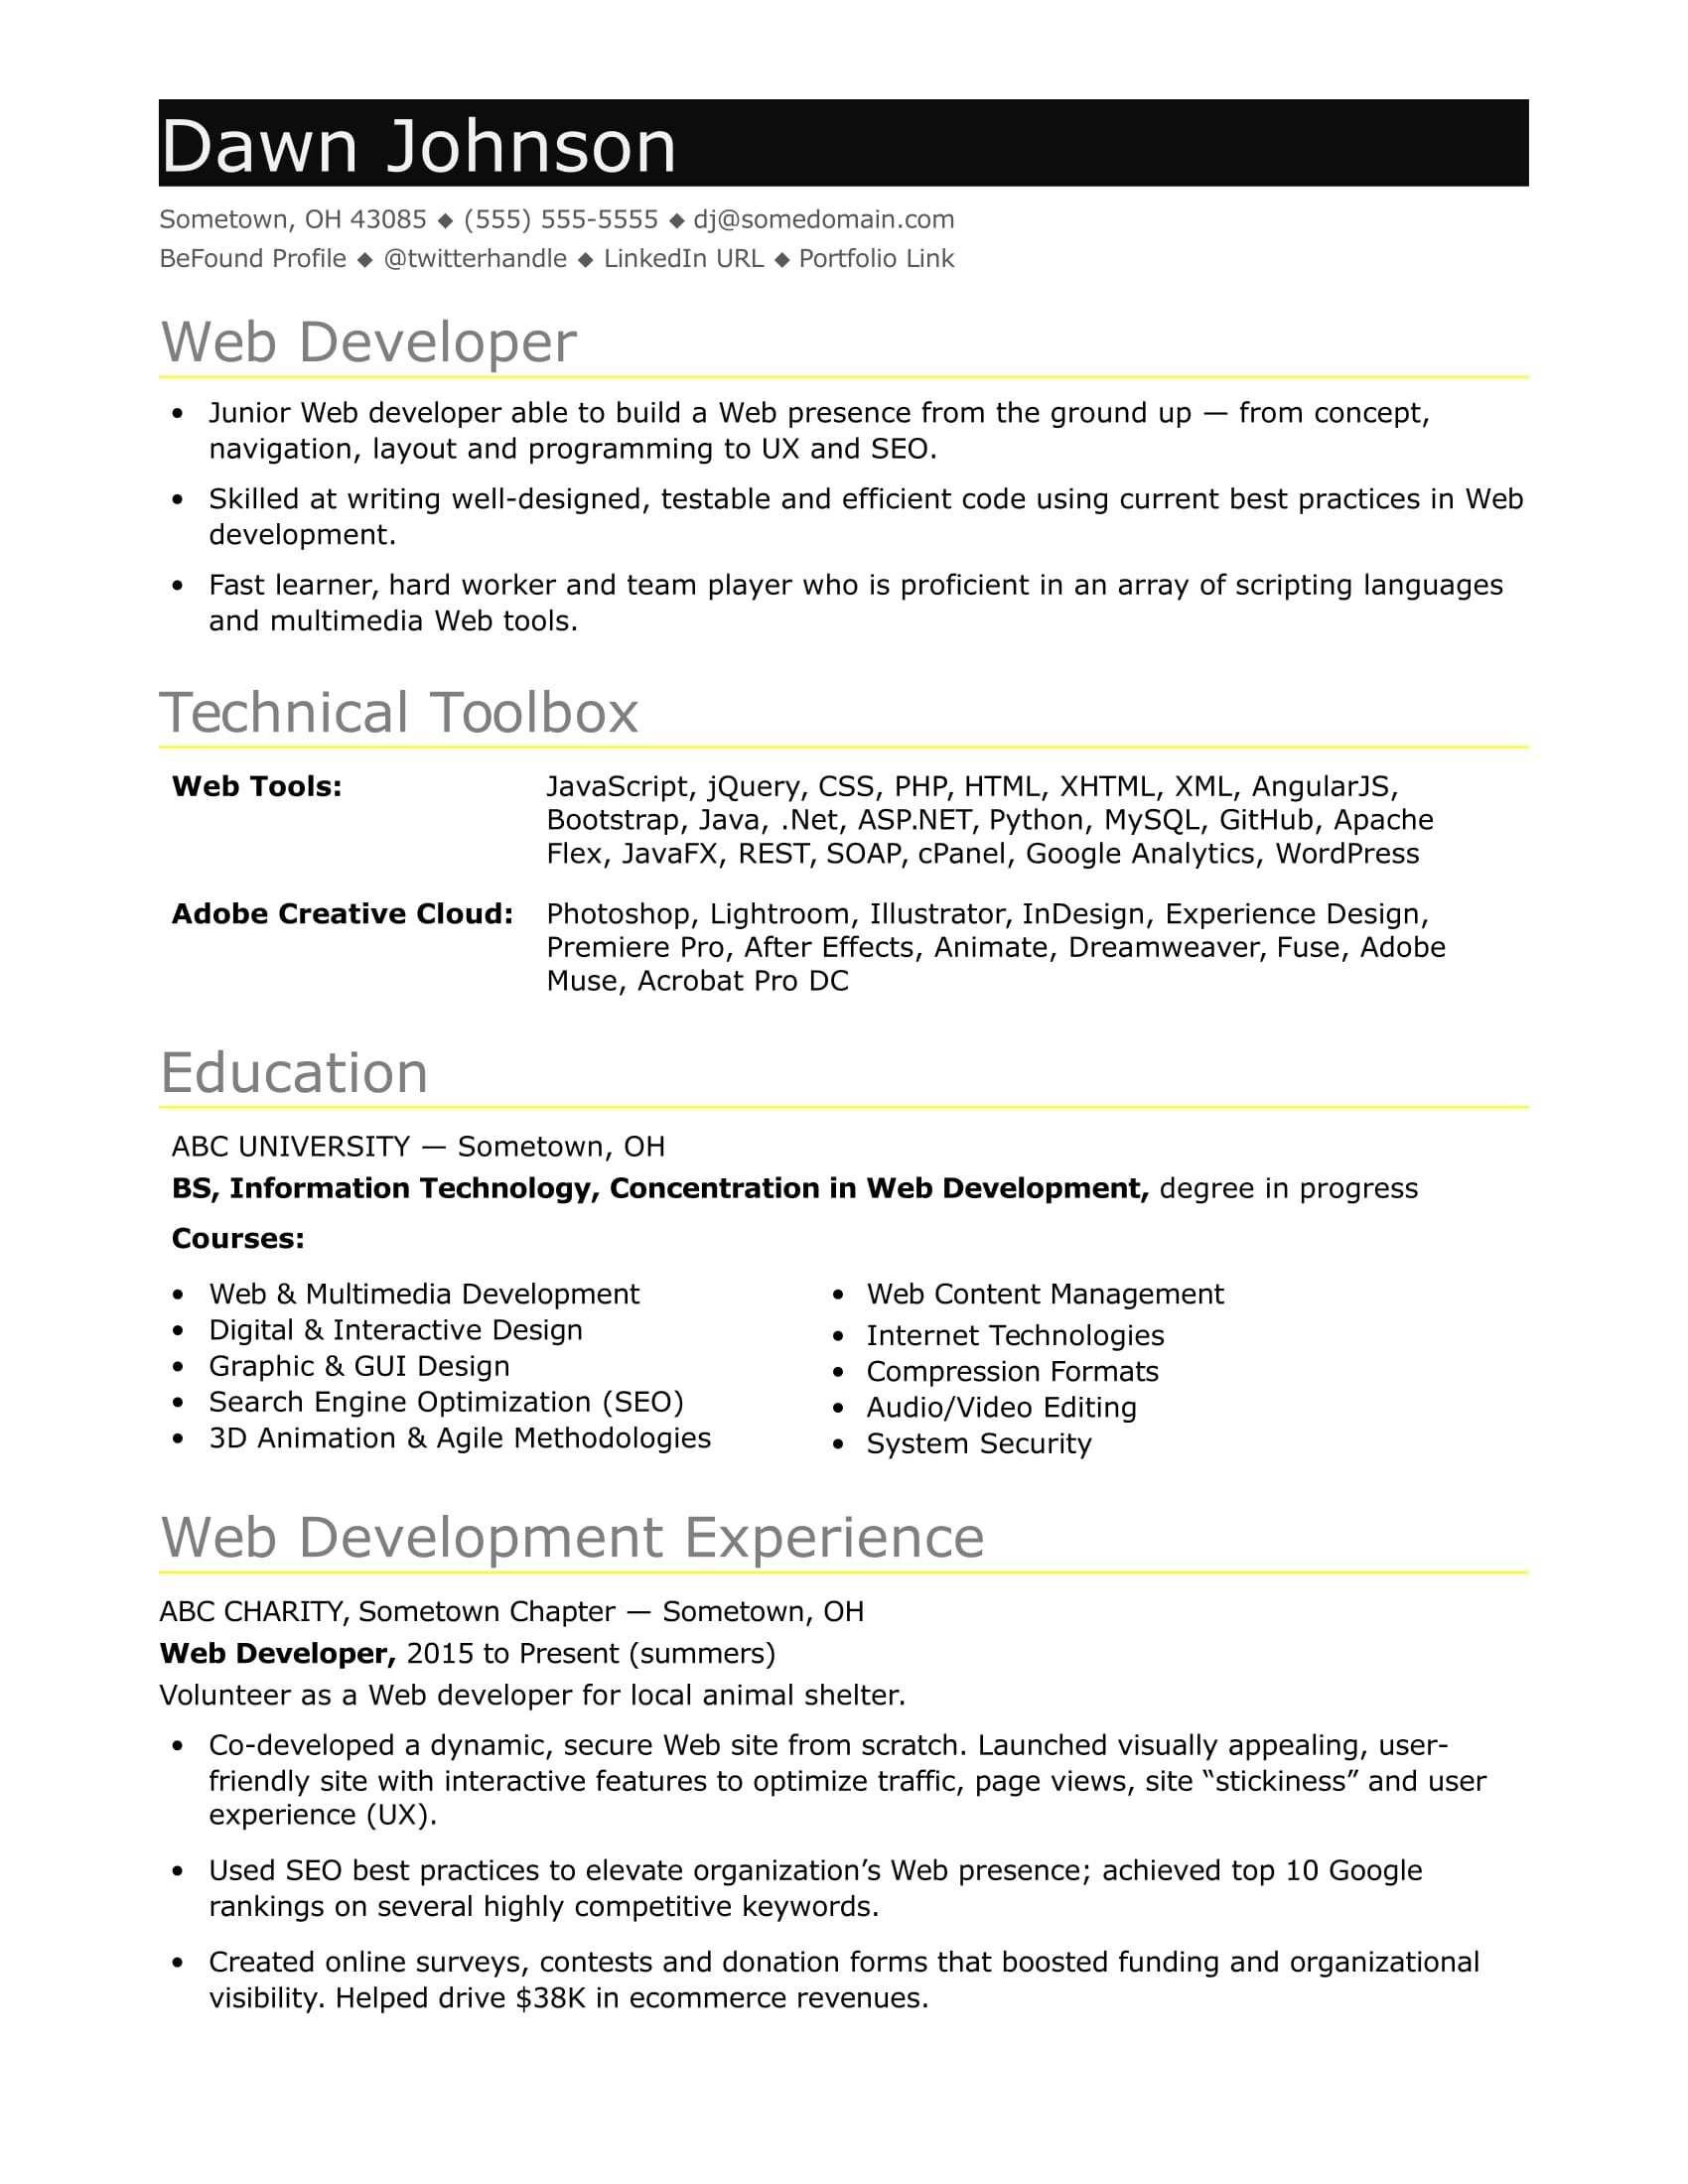 sample resume for an entry level it developer - Entry Level Java Developer Resume